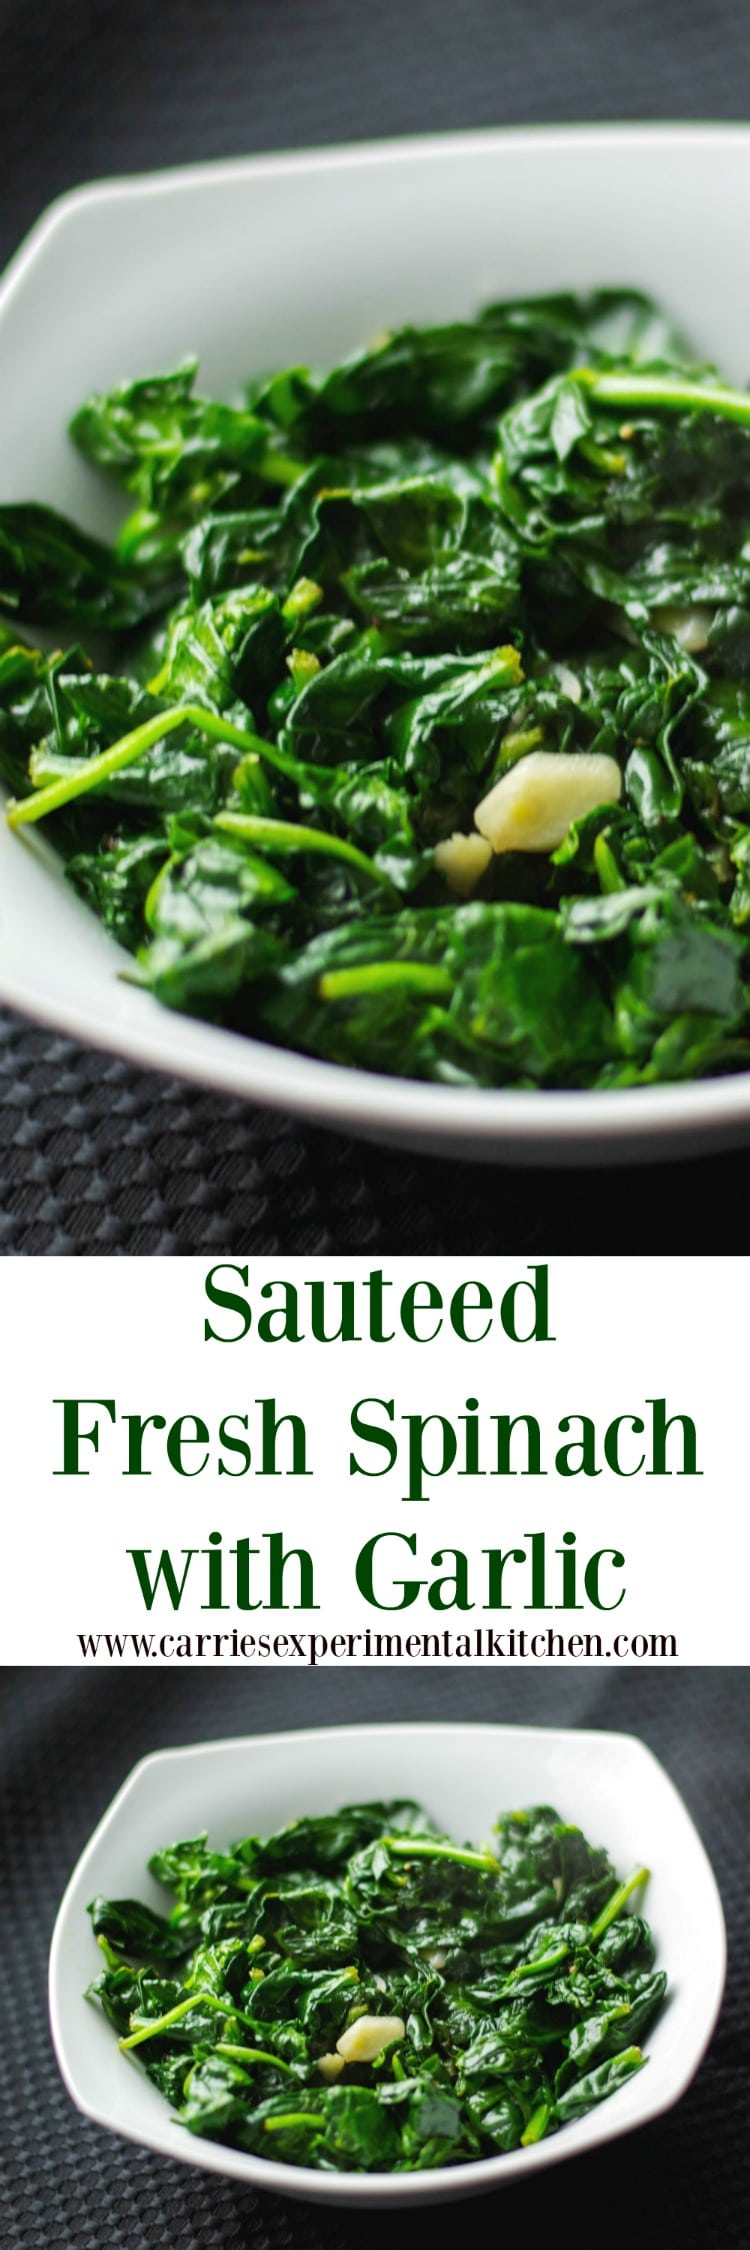 Fresh baby spinach sautéed with extra virgin olive oil and garlic; then lightly seasoned with salt and pepper.  #spinach #garlic #vegetable #vegetarian